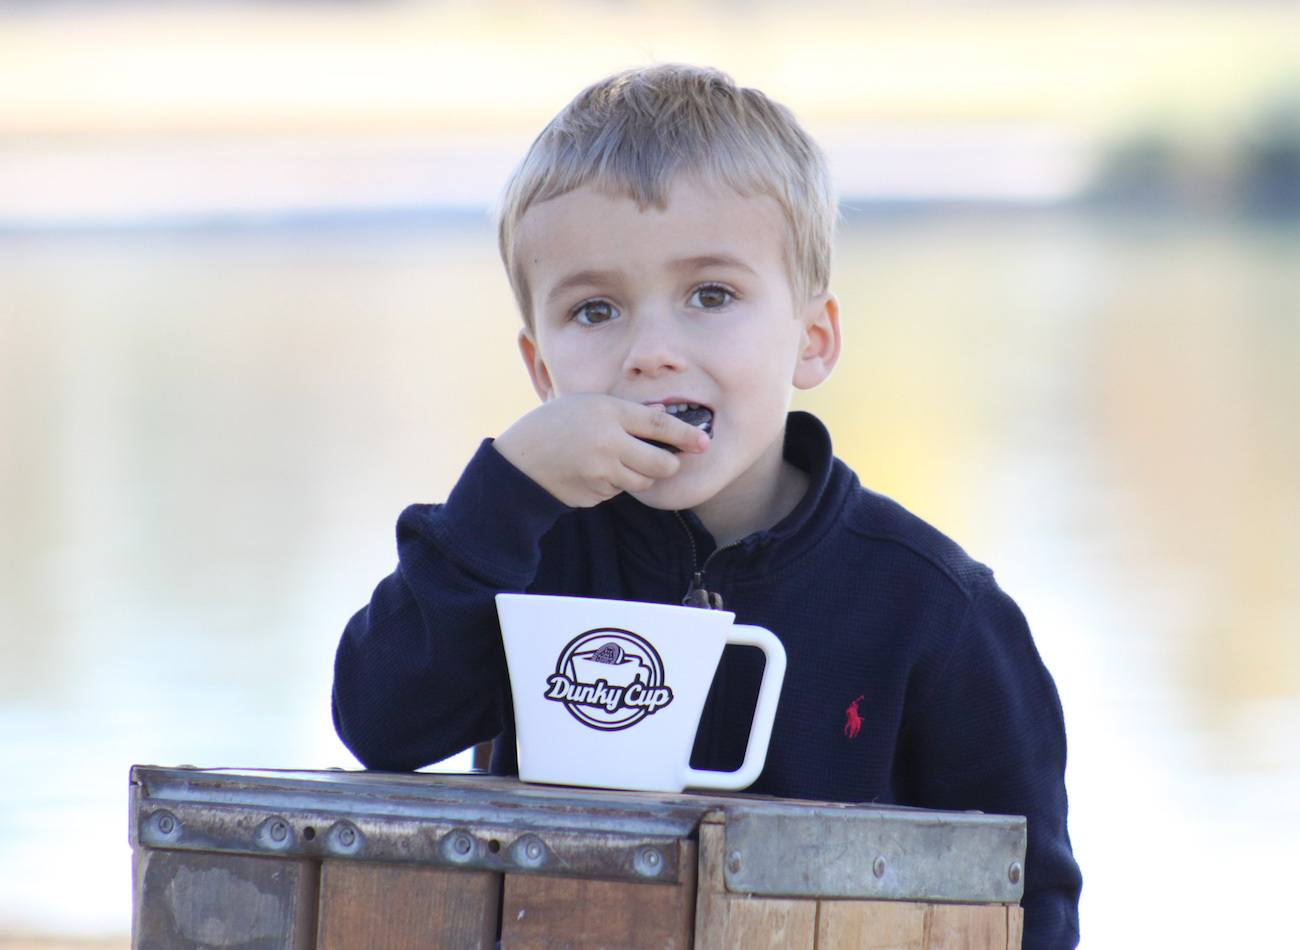 Dunky Cup Cookie Dunking Mug